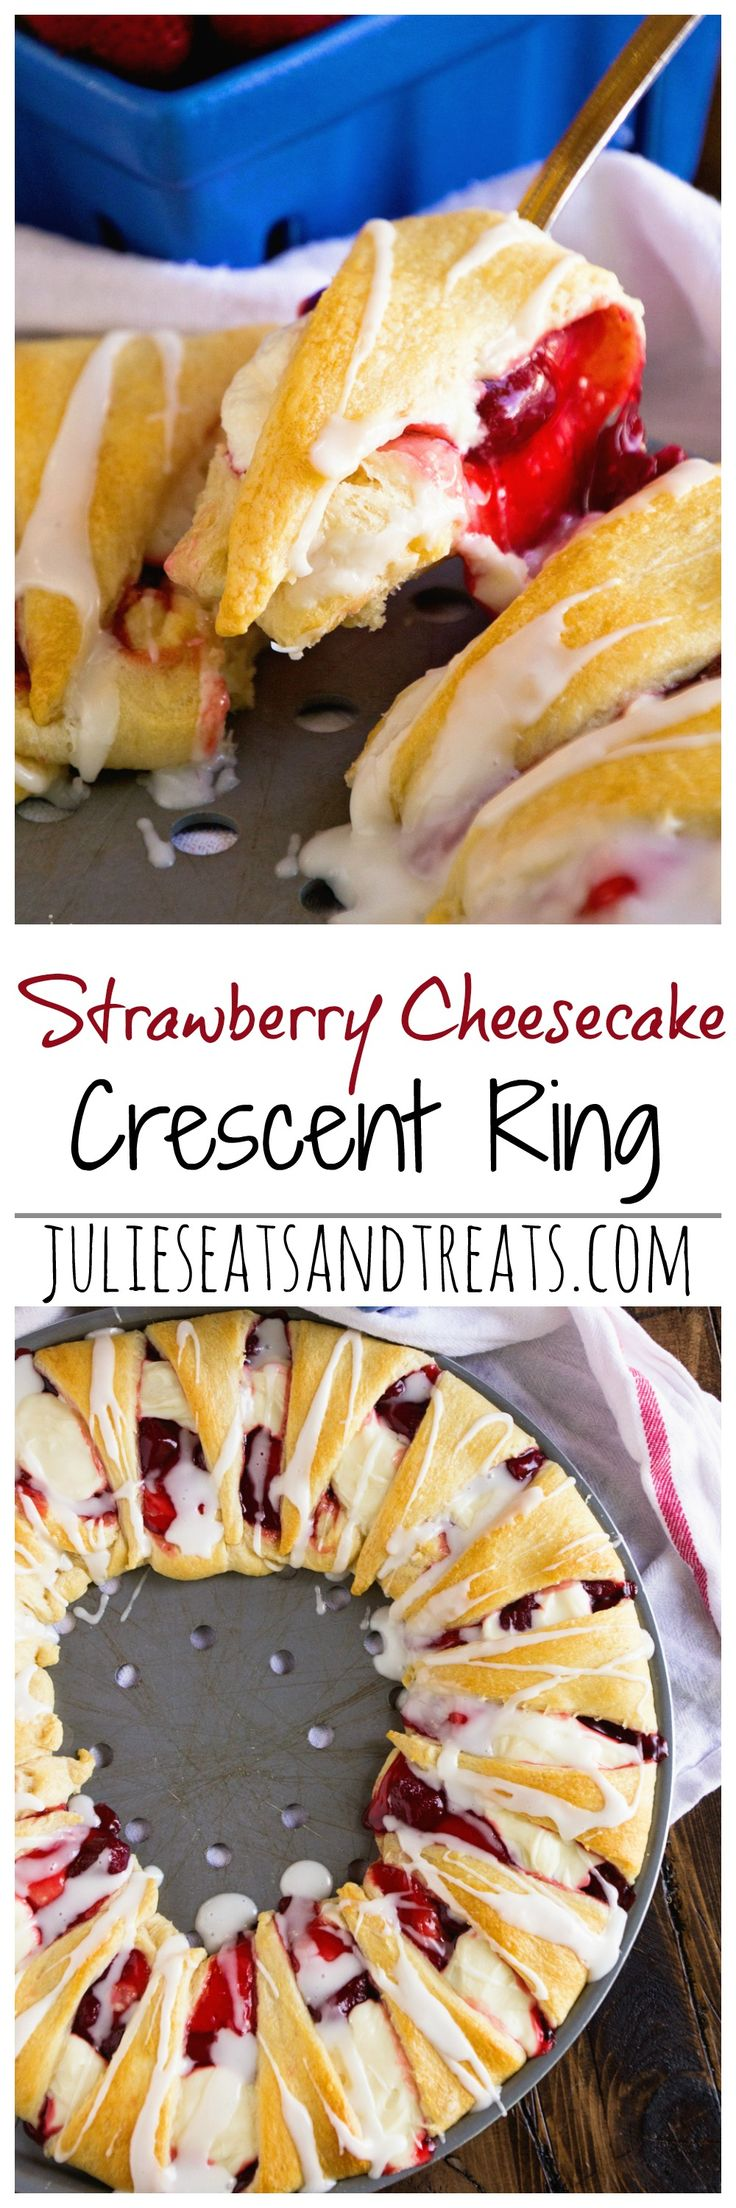 Strawberry Cheesecake Crescent Ring ~ Tender, Flaky Crescent Rolls Stuffed with Strawberry Pie Filling & Cheesecake then Drizzled with Icing! Perfect Quick & Easy Breakfast Recipe! on MyRecipeMagic.com